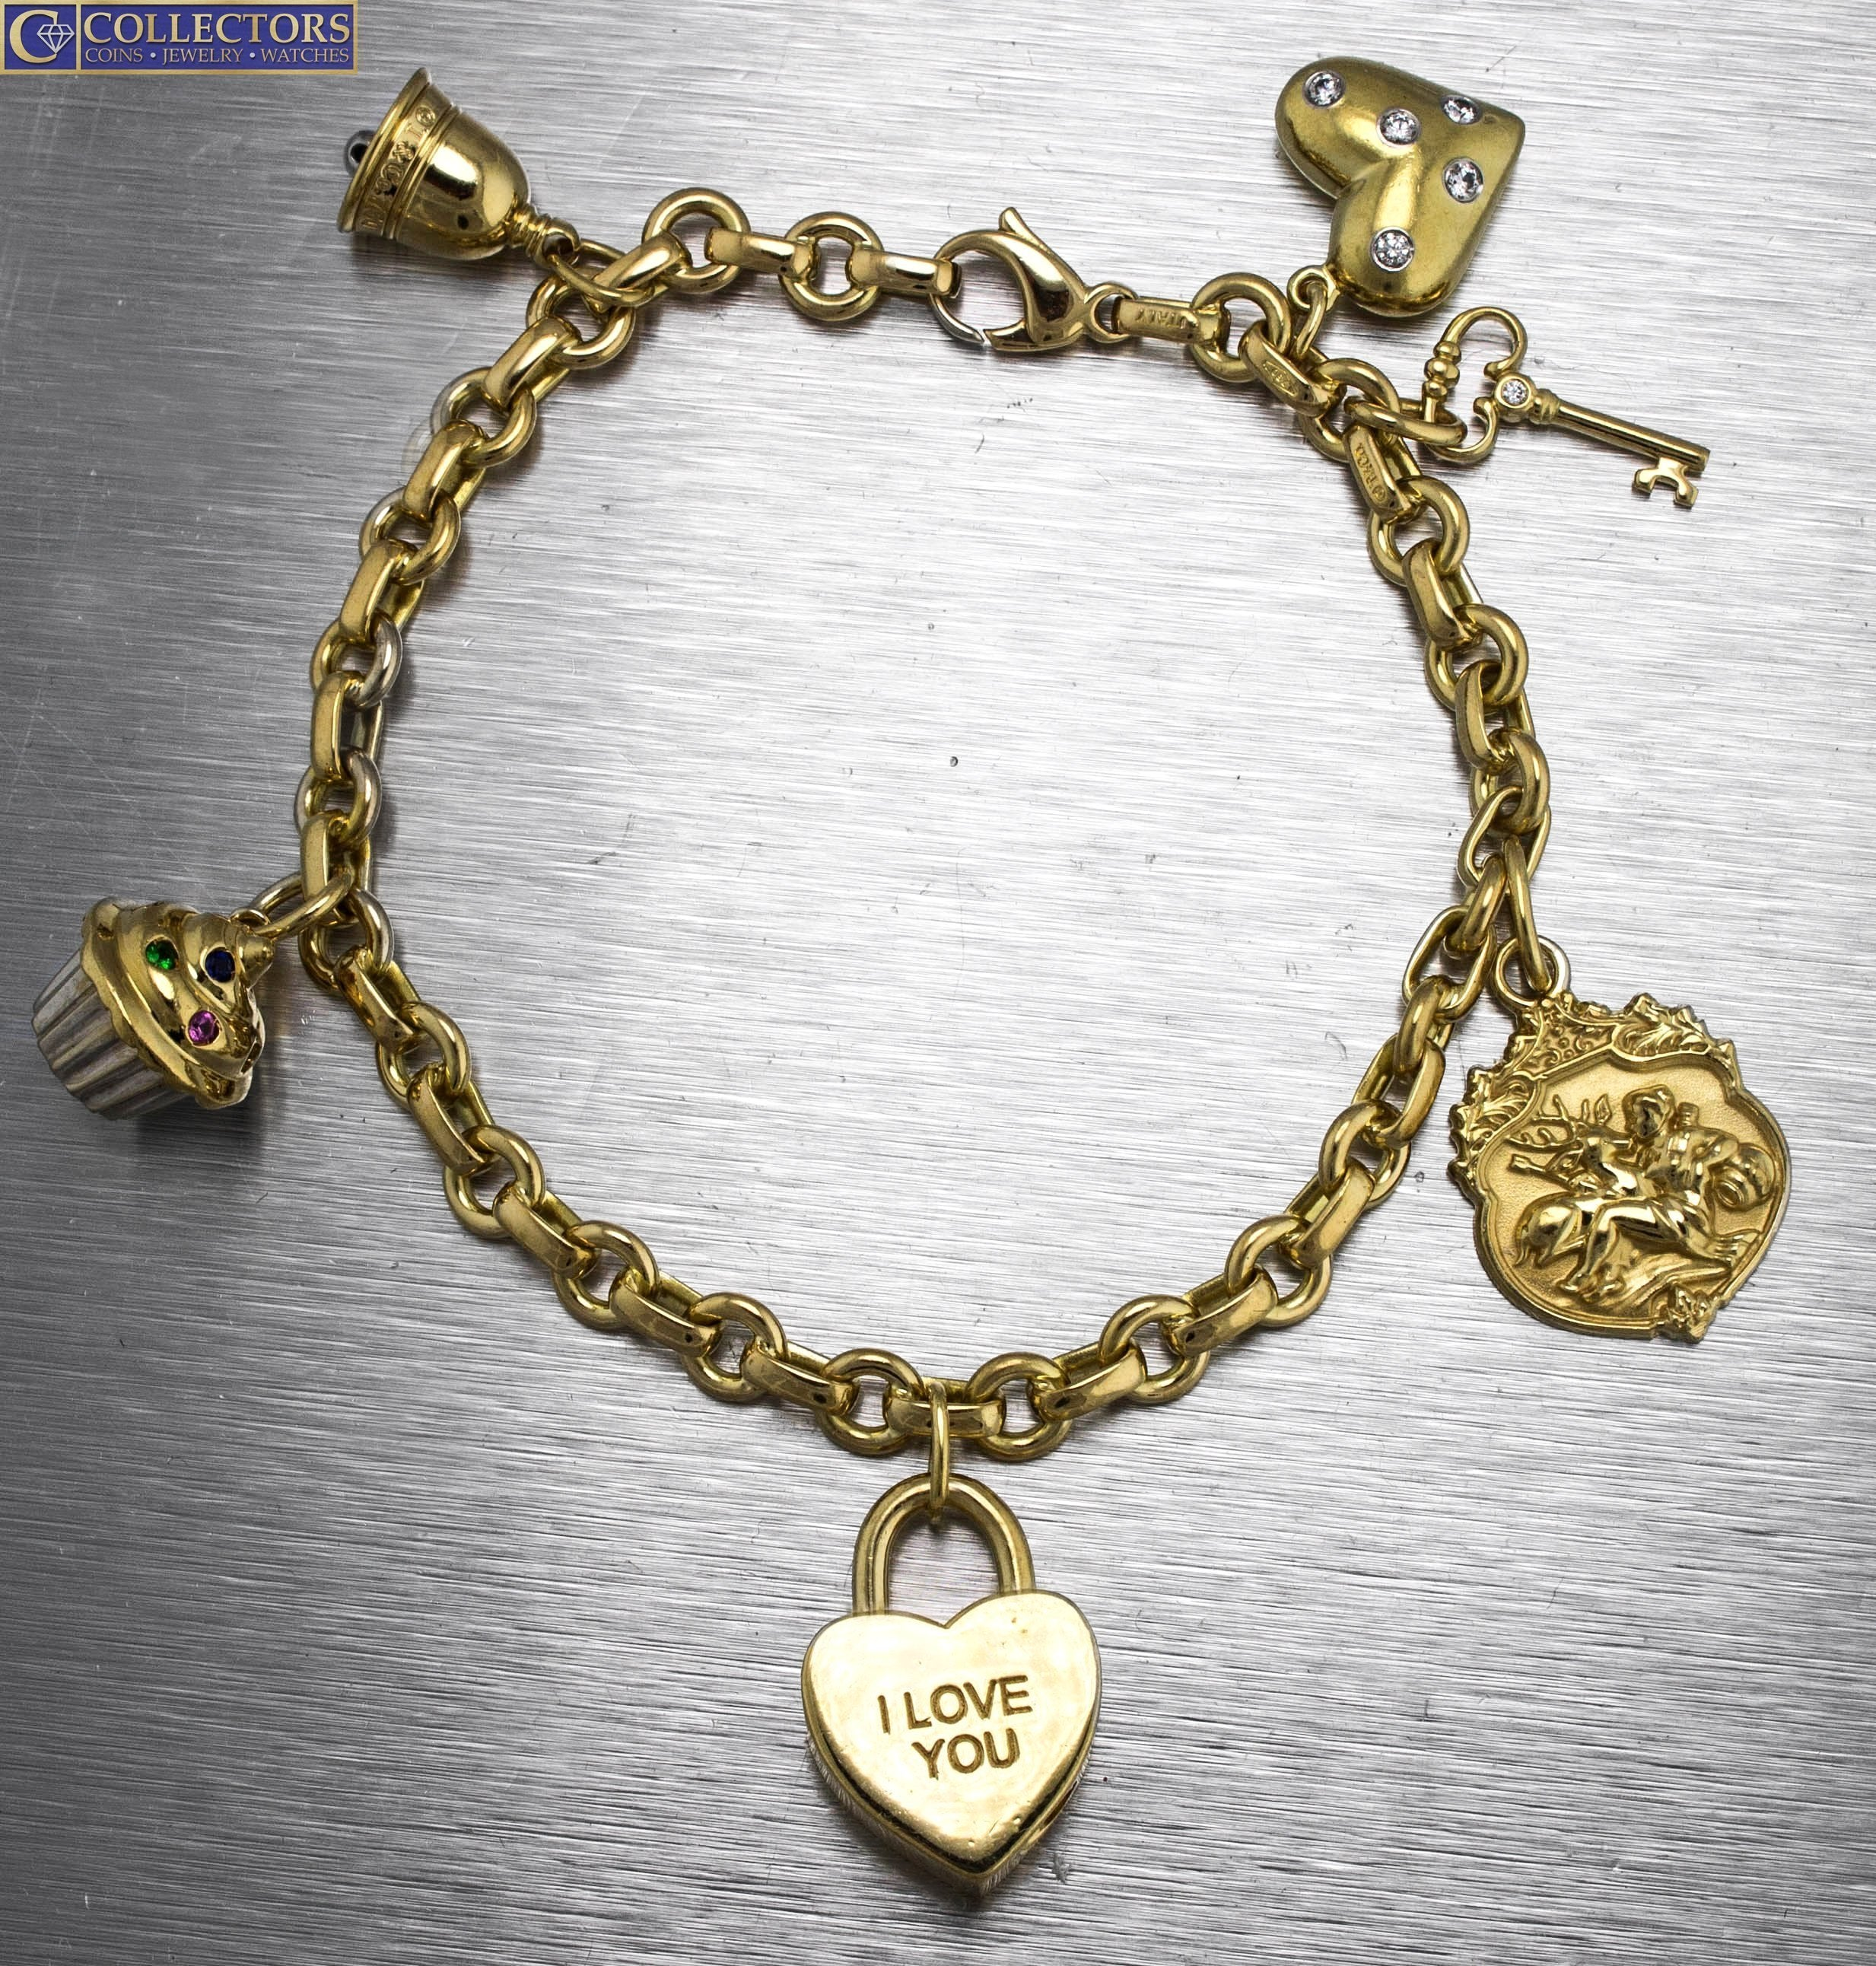 b13365383 Ladies Vintage Estate Tiffany & Co. 18K 750 Yellow Gold Multi Charm  Bracelet ...